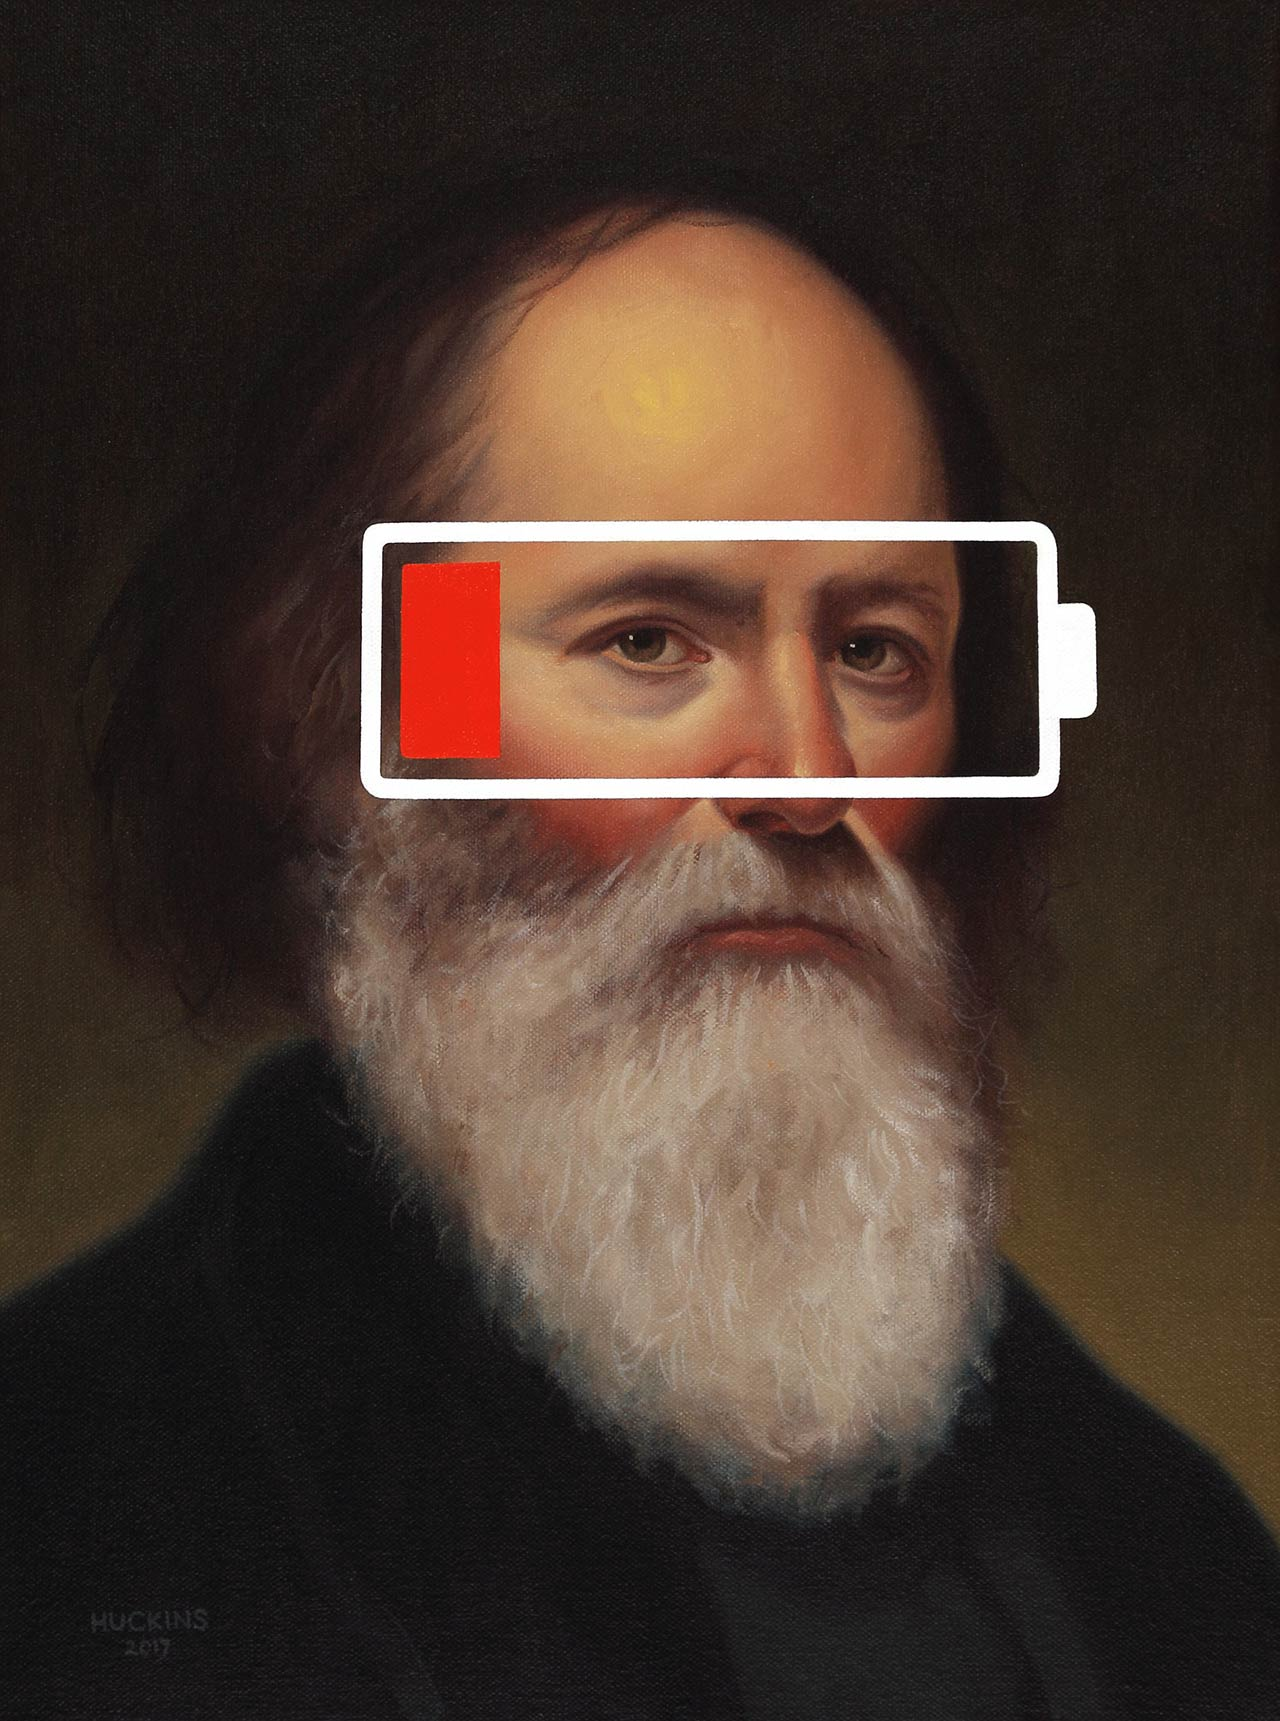 Shawn Huckins, Charles Loring Elliot: Panic One (Low Battery), 2017. Acrylic on canvas, 16 x 12 in (41 x 30 cm).